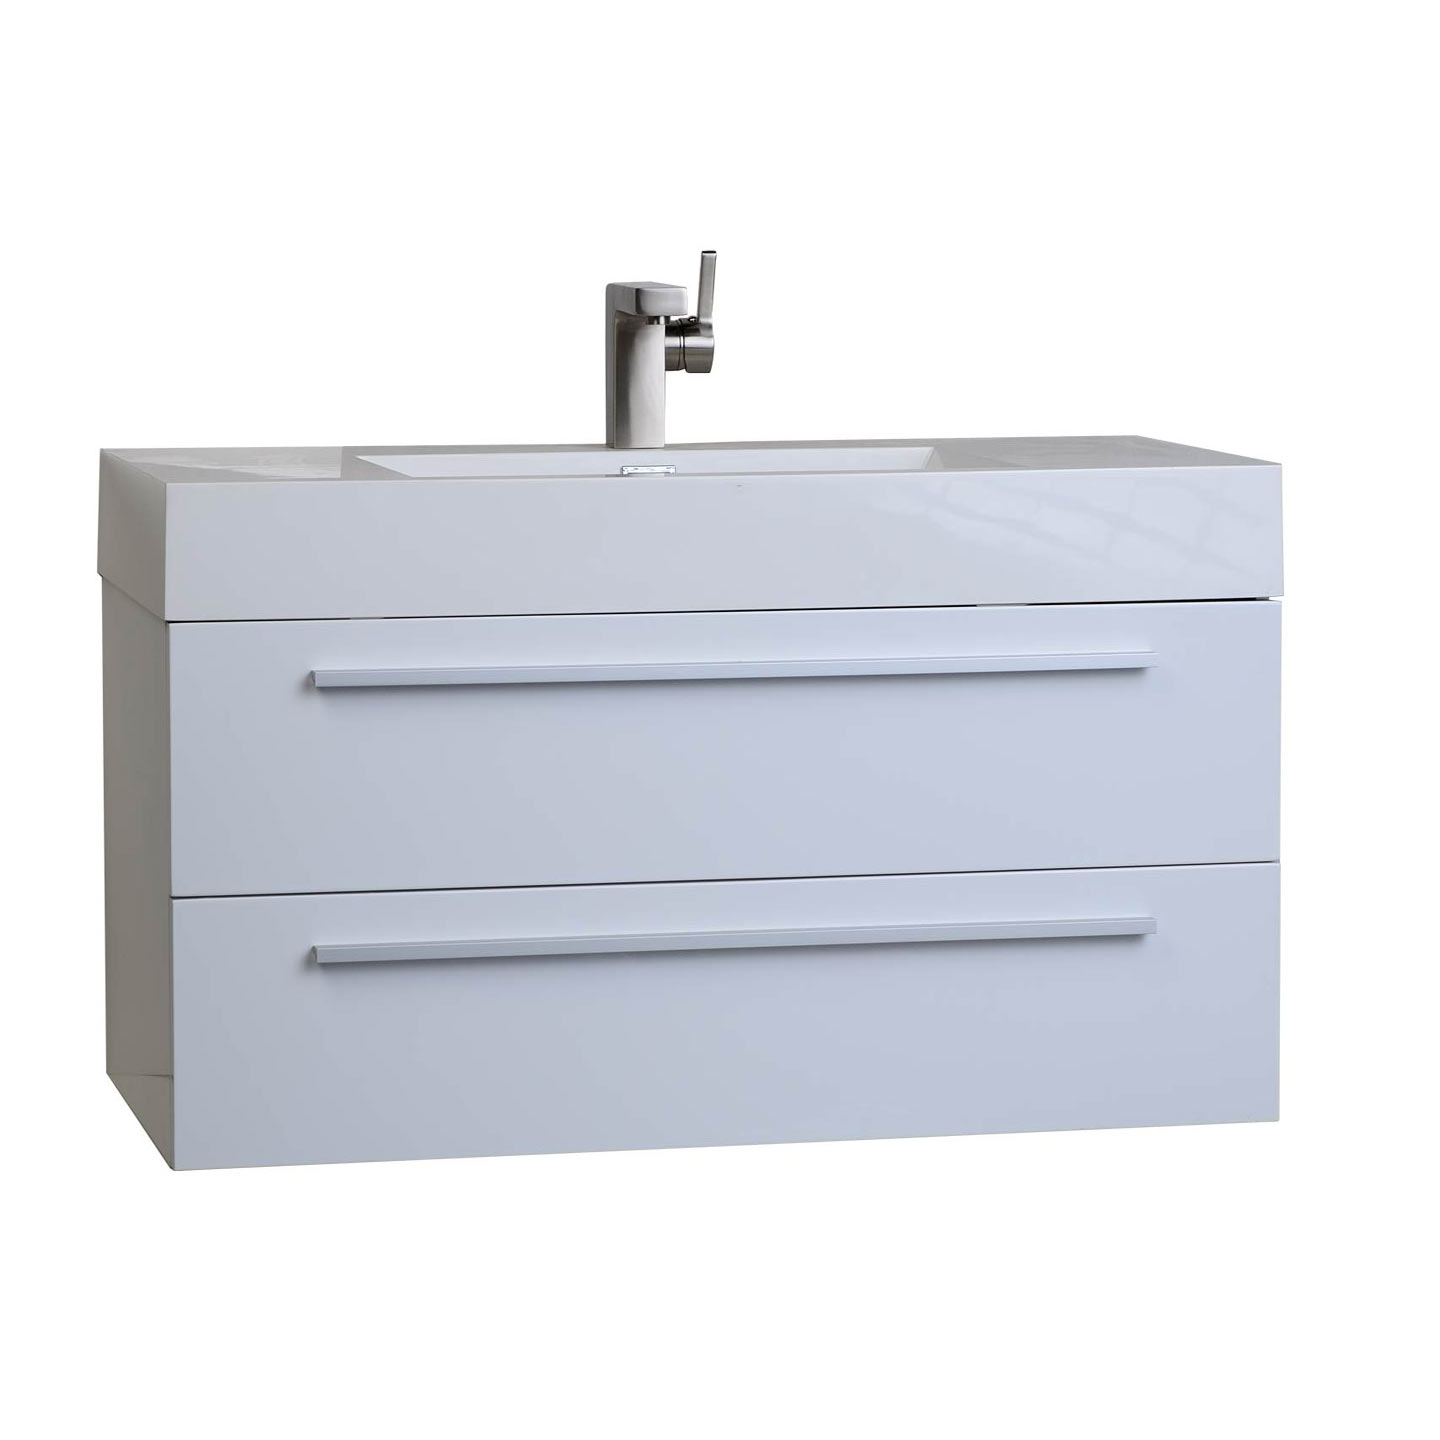 Wall Mounted Bathroom Cabinets White Gloss  Cabinets Matttroy